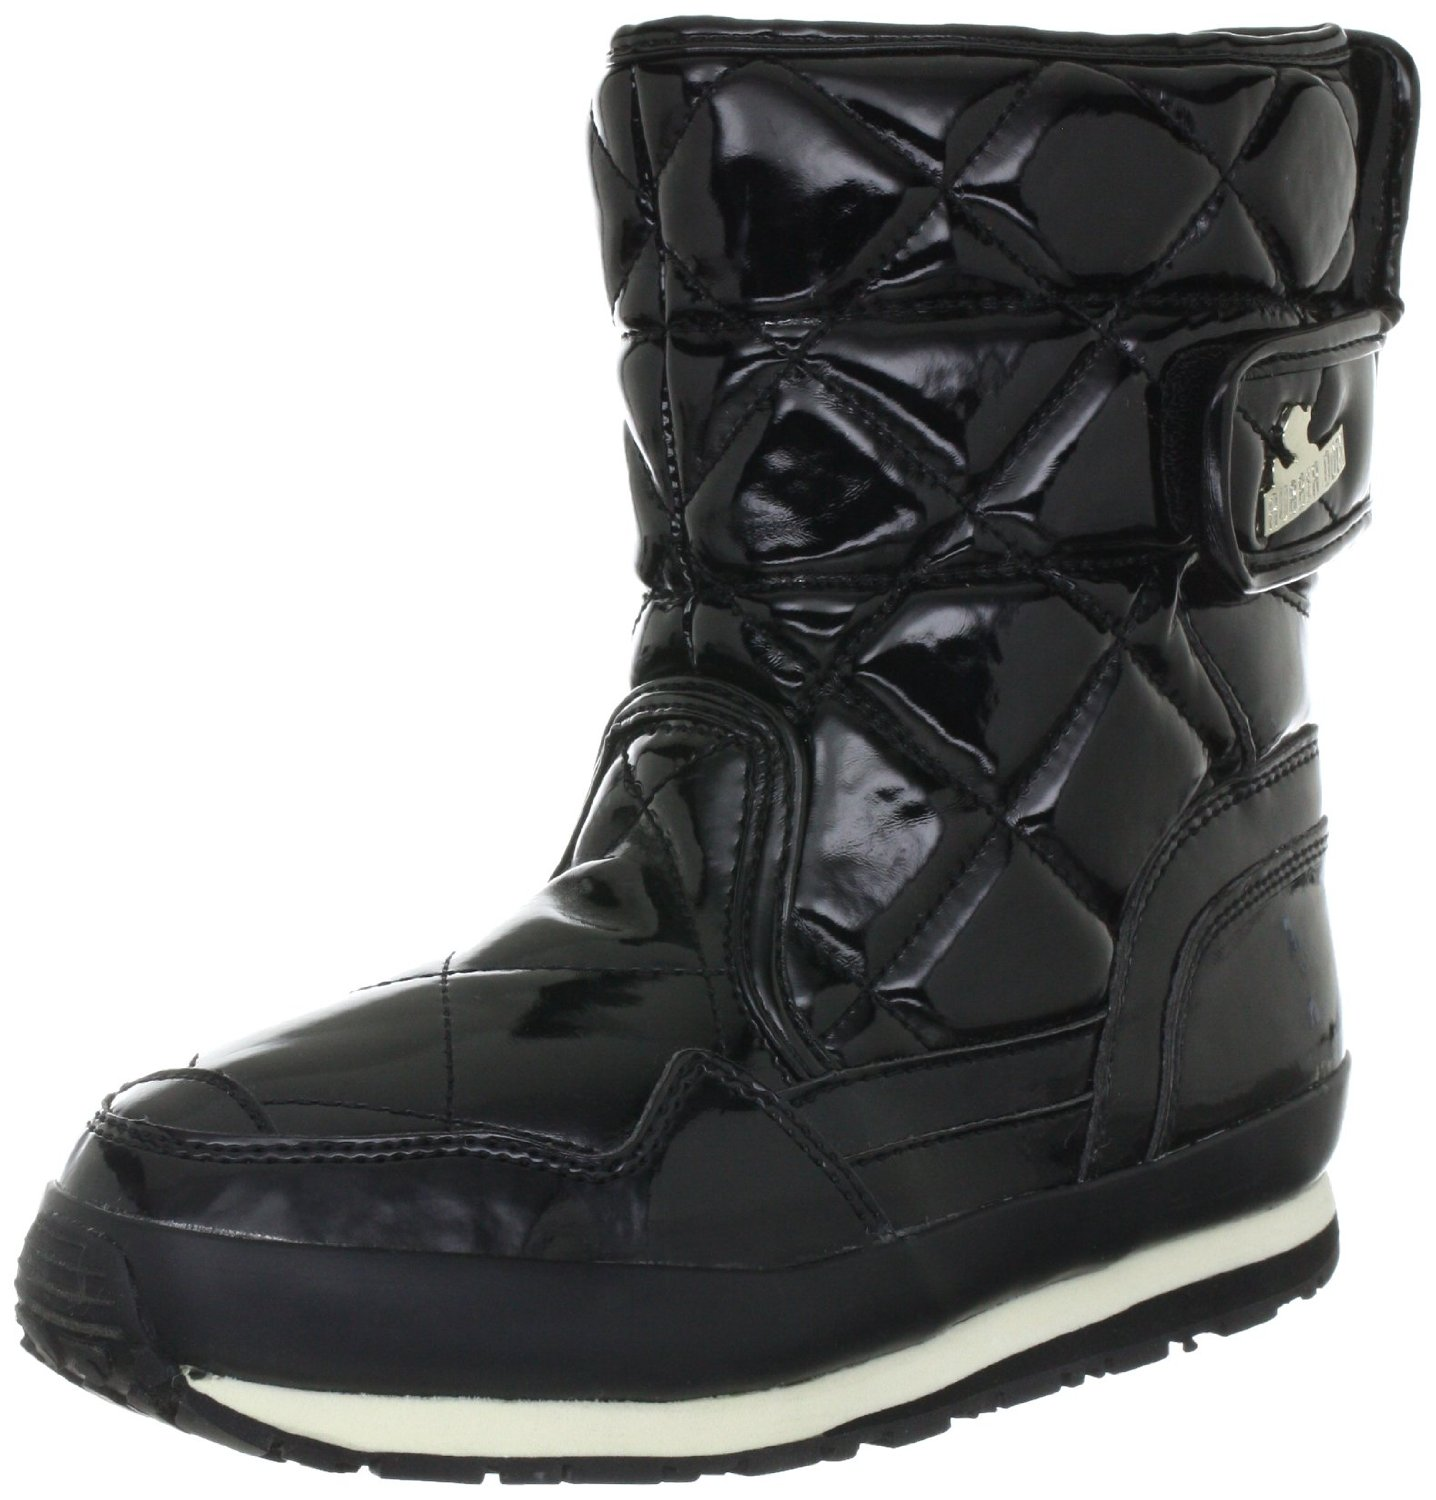 Original  Signature C Black MidCalf Winter Duck Boots Womens Shoes A7258  EBay